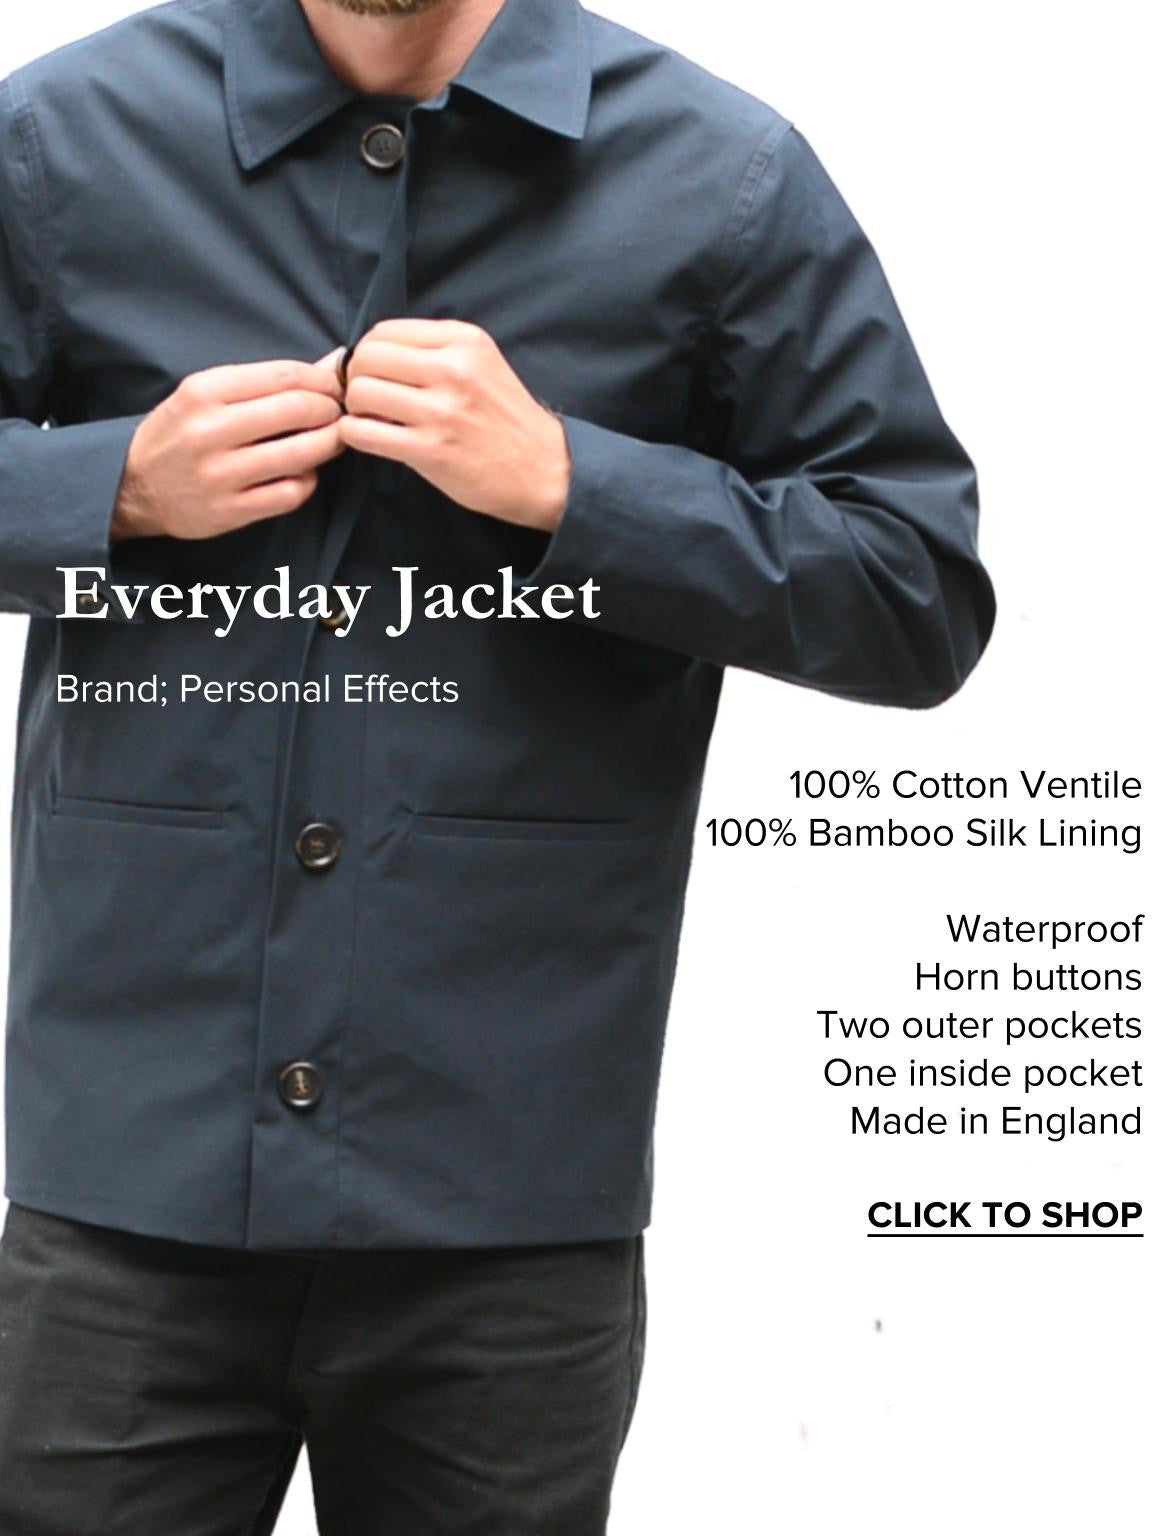 Summer Style Counsel_ WesternAssembly.com Waterproof Jacket by Personal Effects